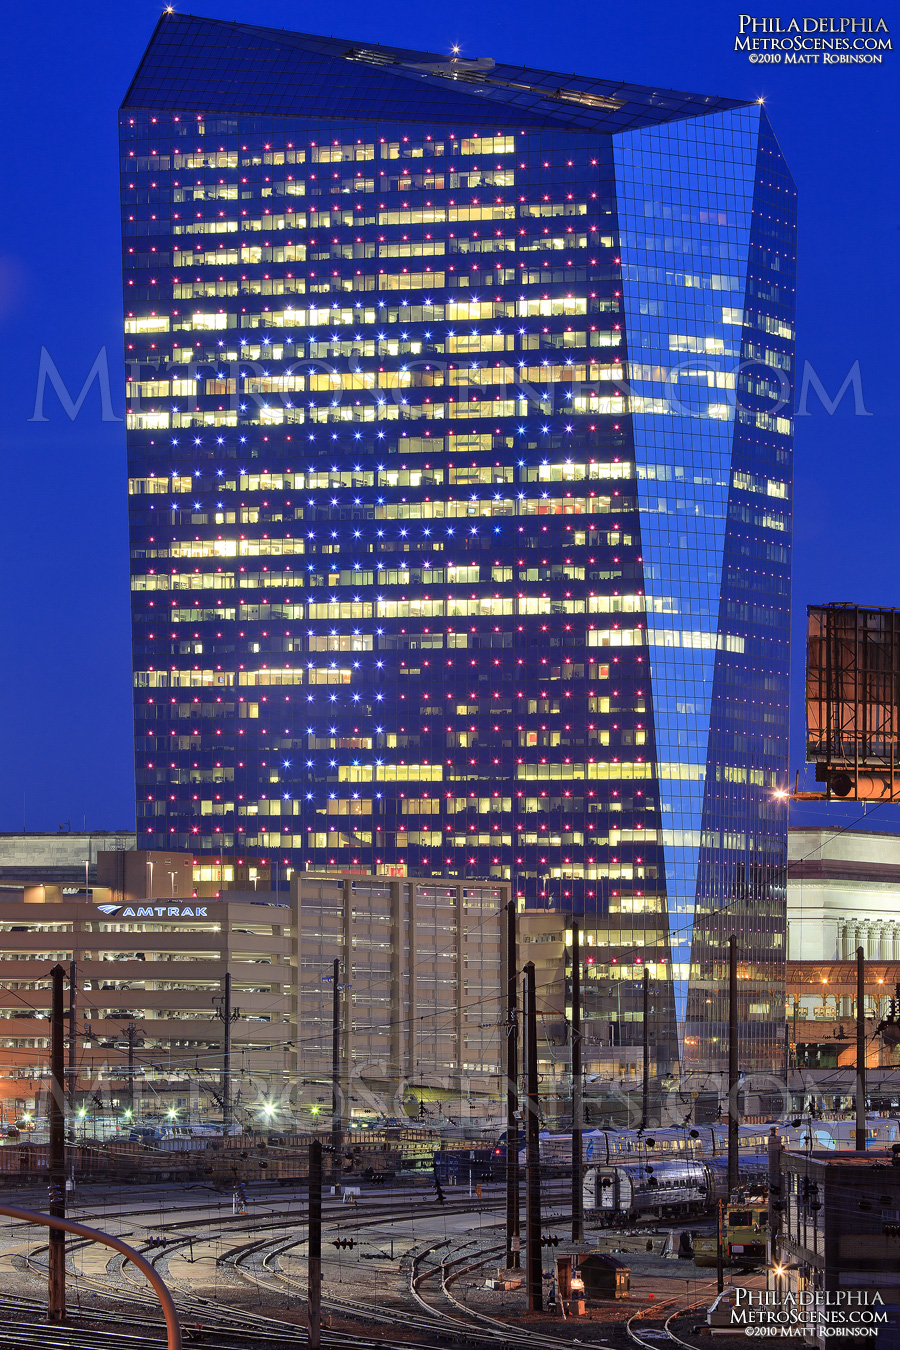 Cira Center at night